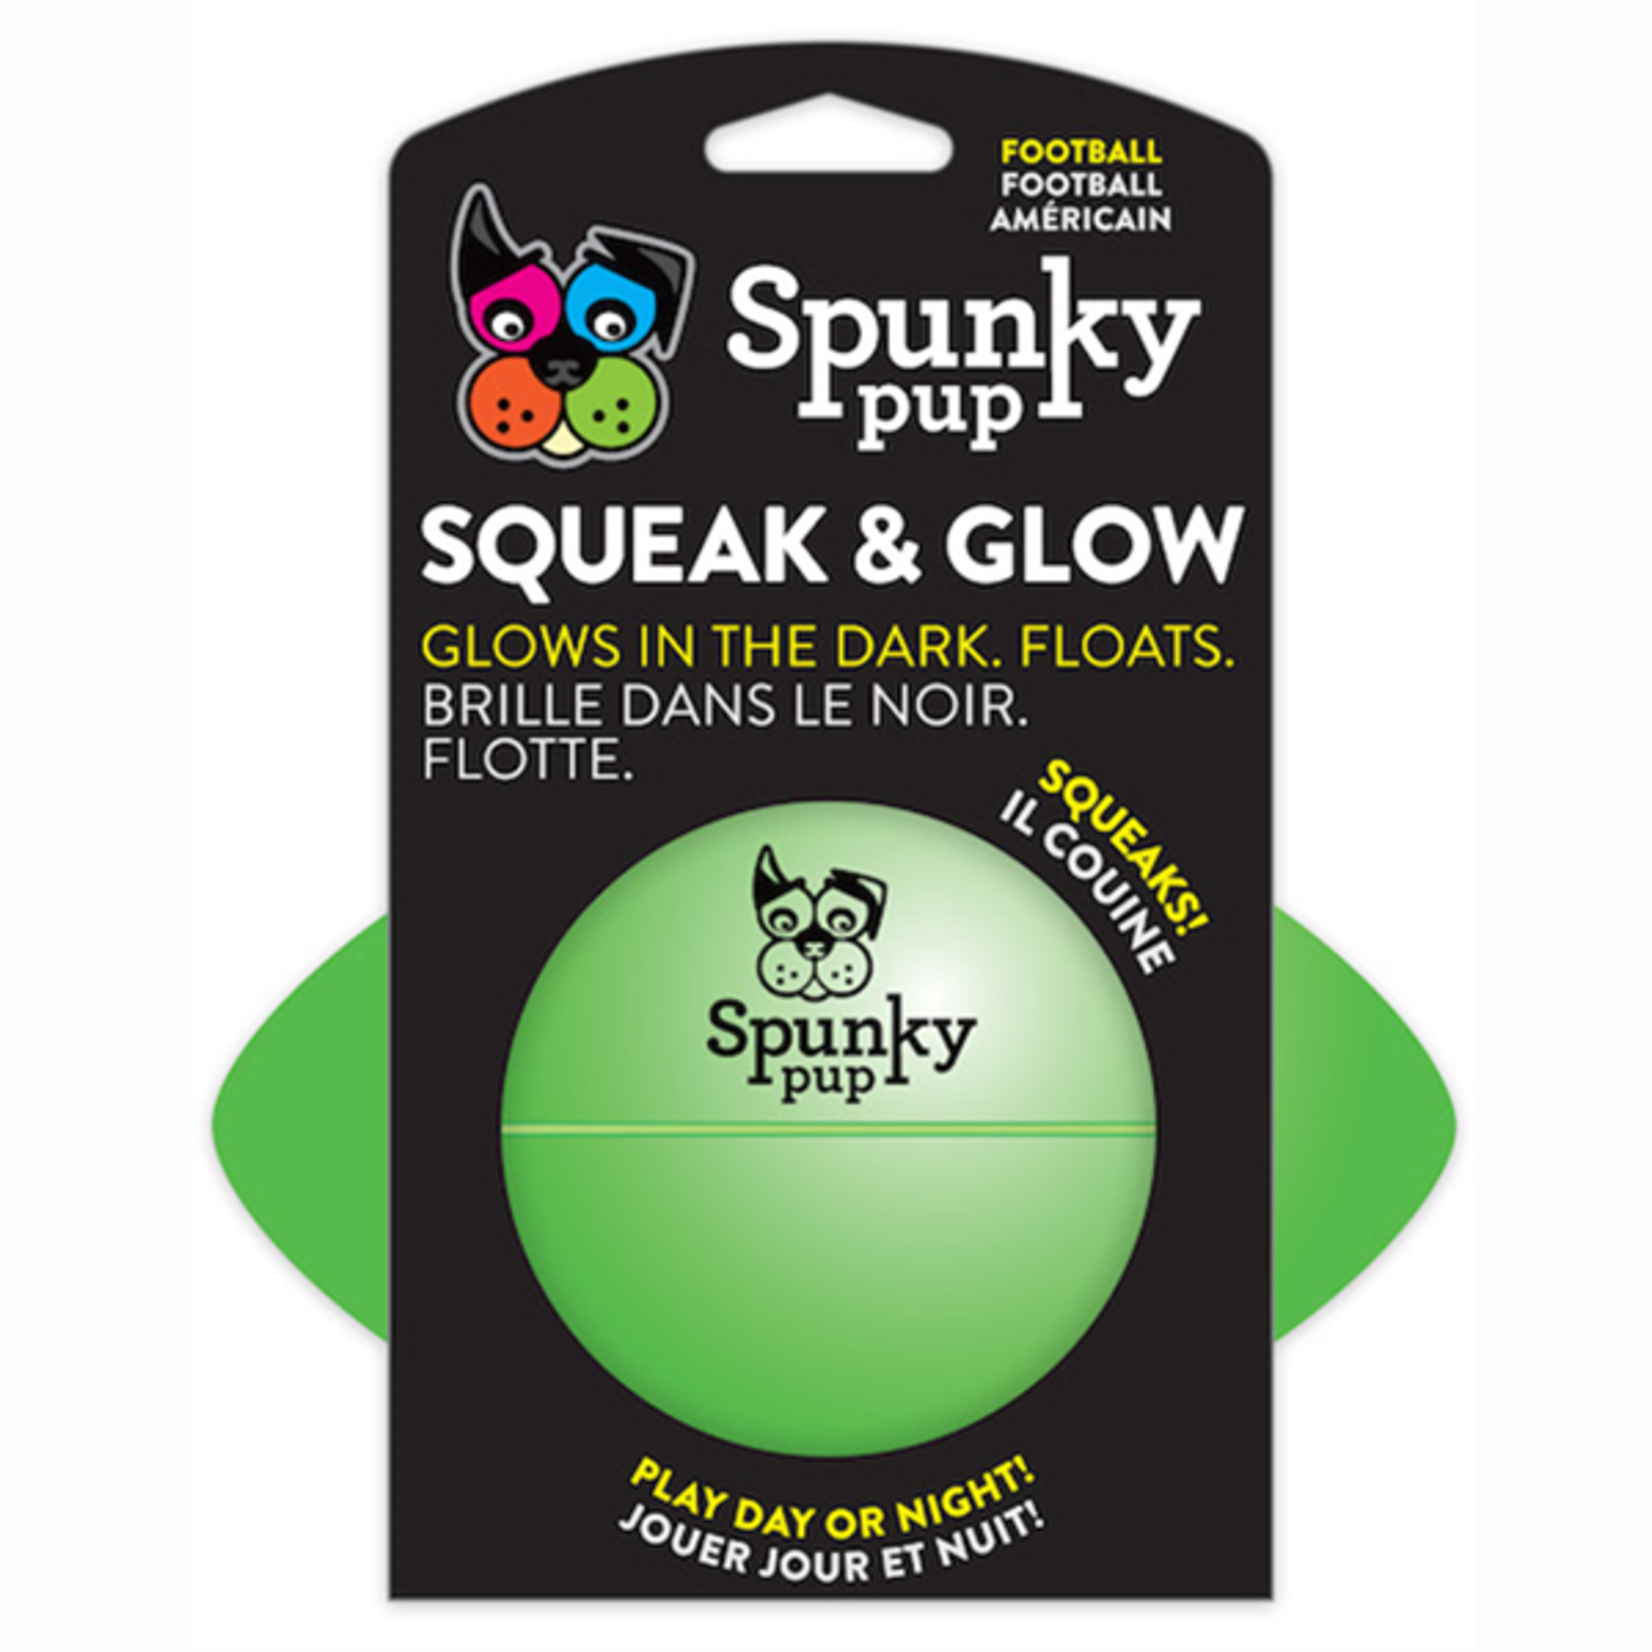 Spunky pup Spunky Pup Squeaky & Glow Football